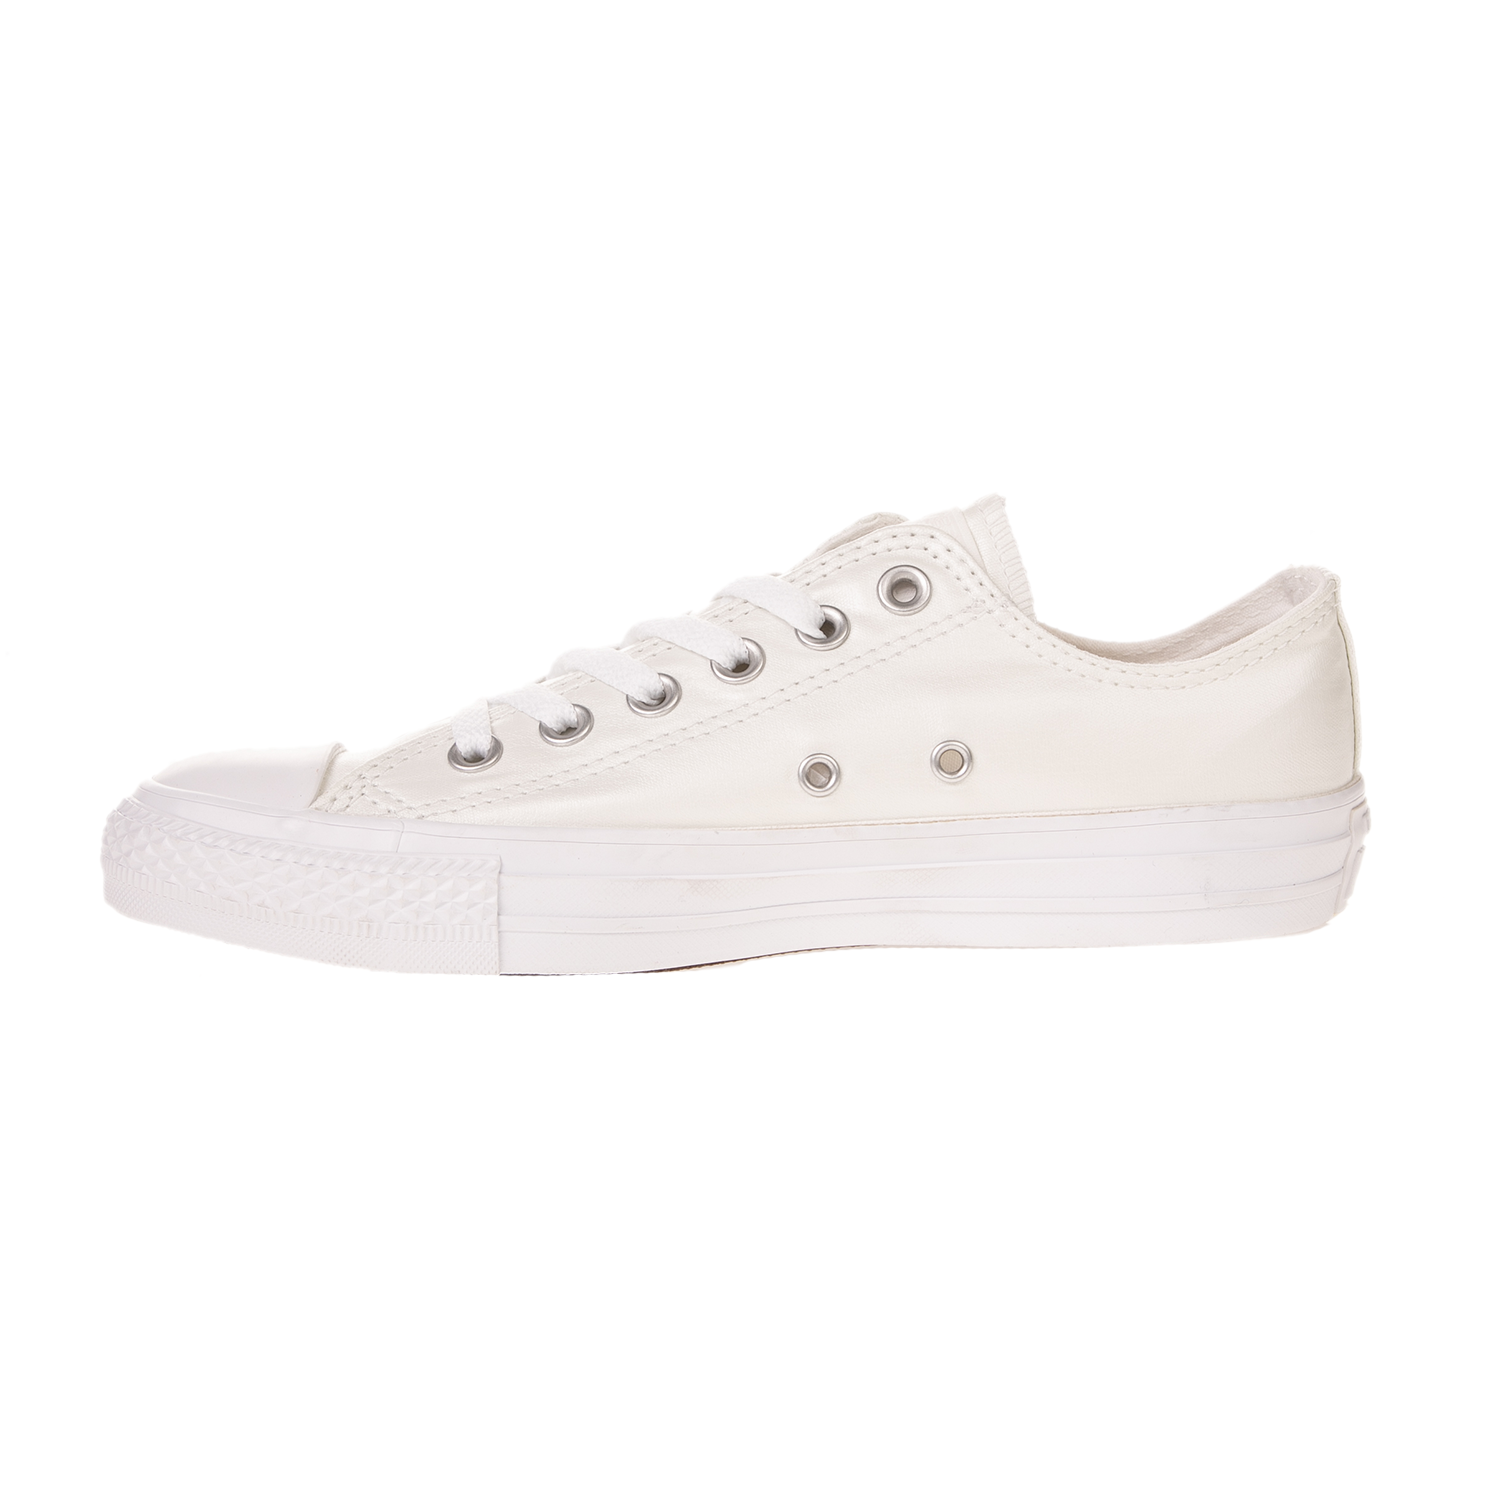 CONVERSE – Unisex sneakers CONVERSE Chuck Taylor All Star Ox λευκά